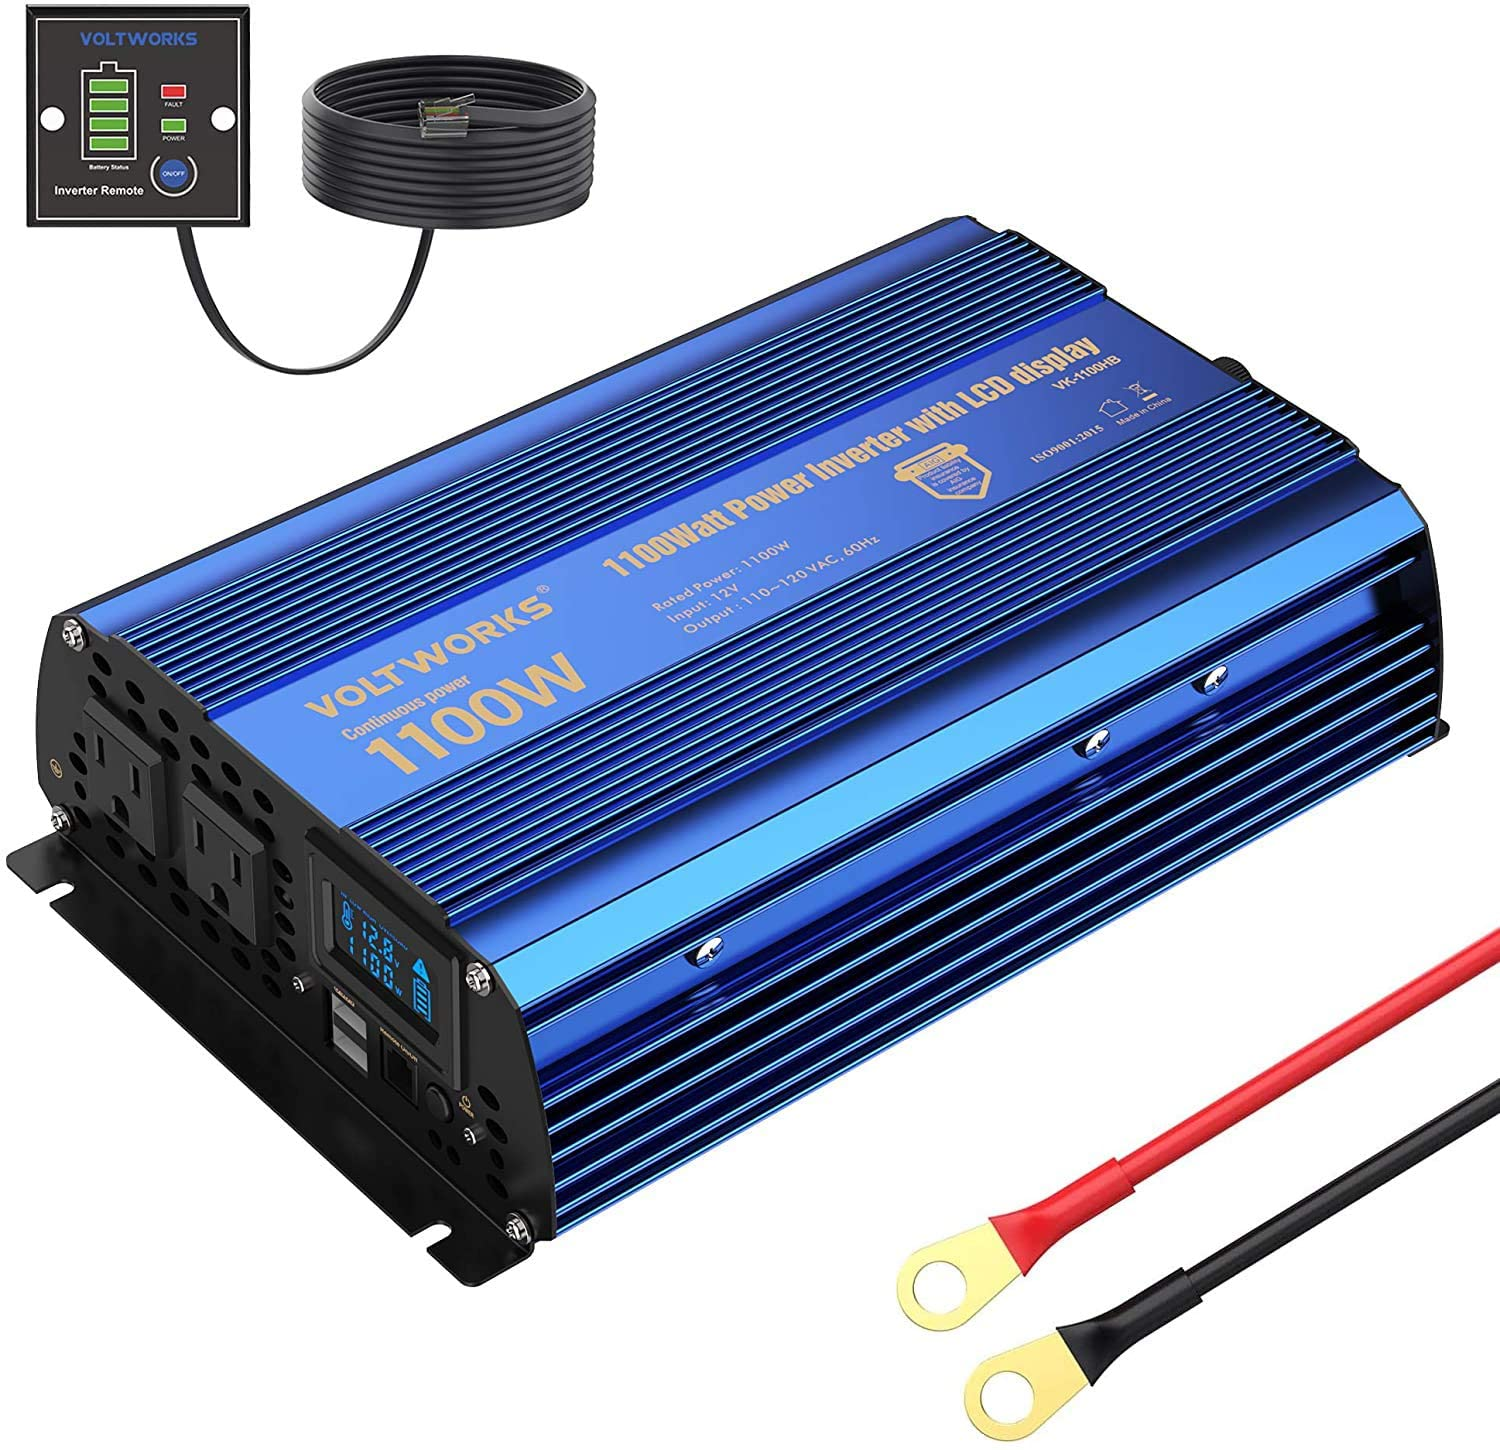 VoltWorks Power Inverter 1100 watt DC 12V to AC 120V Modified Sine Wave 1000w Inverter with LCD Display Remote Control 2AC Outlets Dual 2.4A USB Ports for Car RV Truck Boat by VOLTWORKS